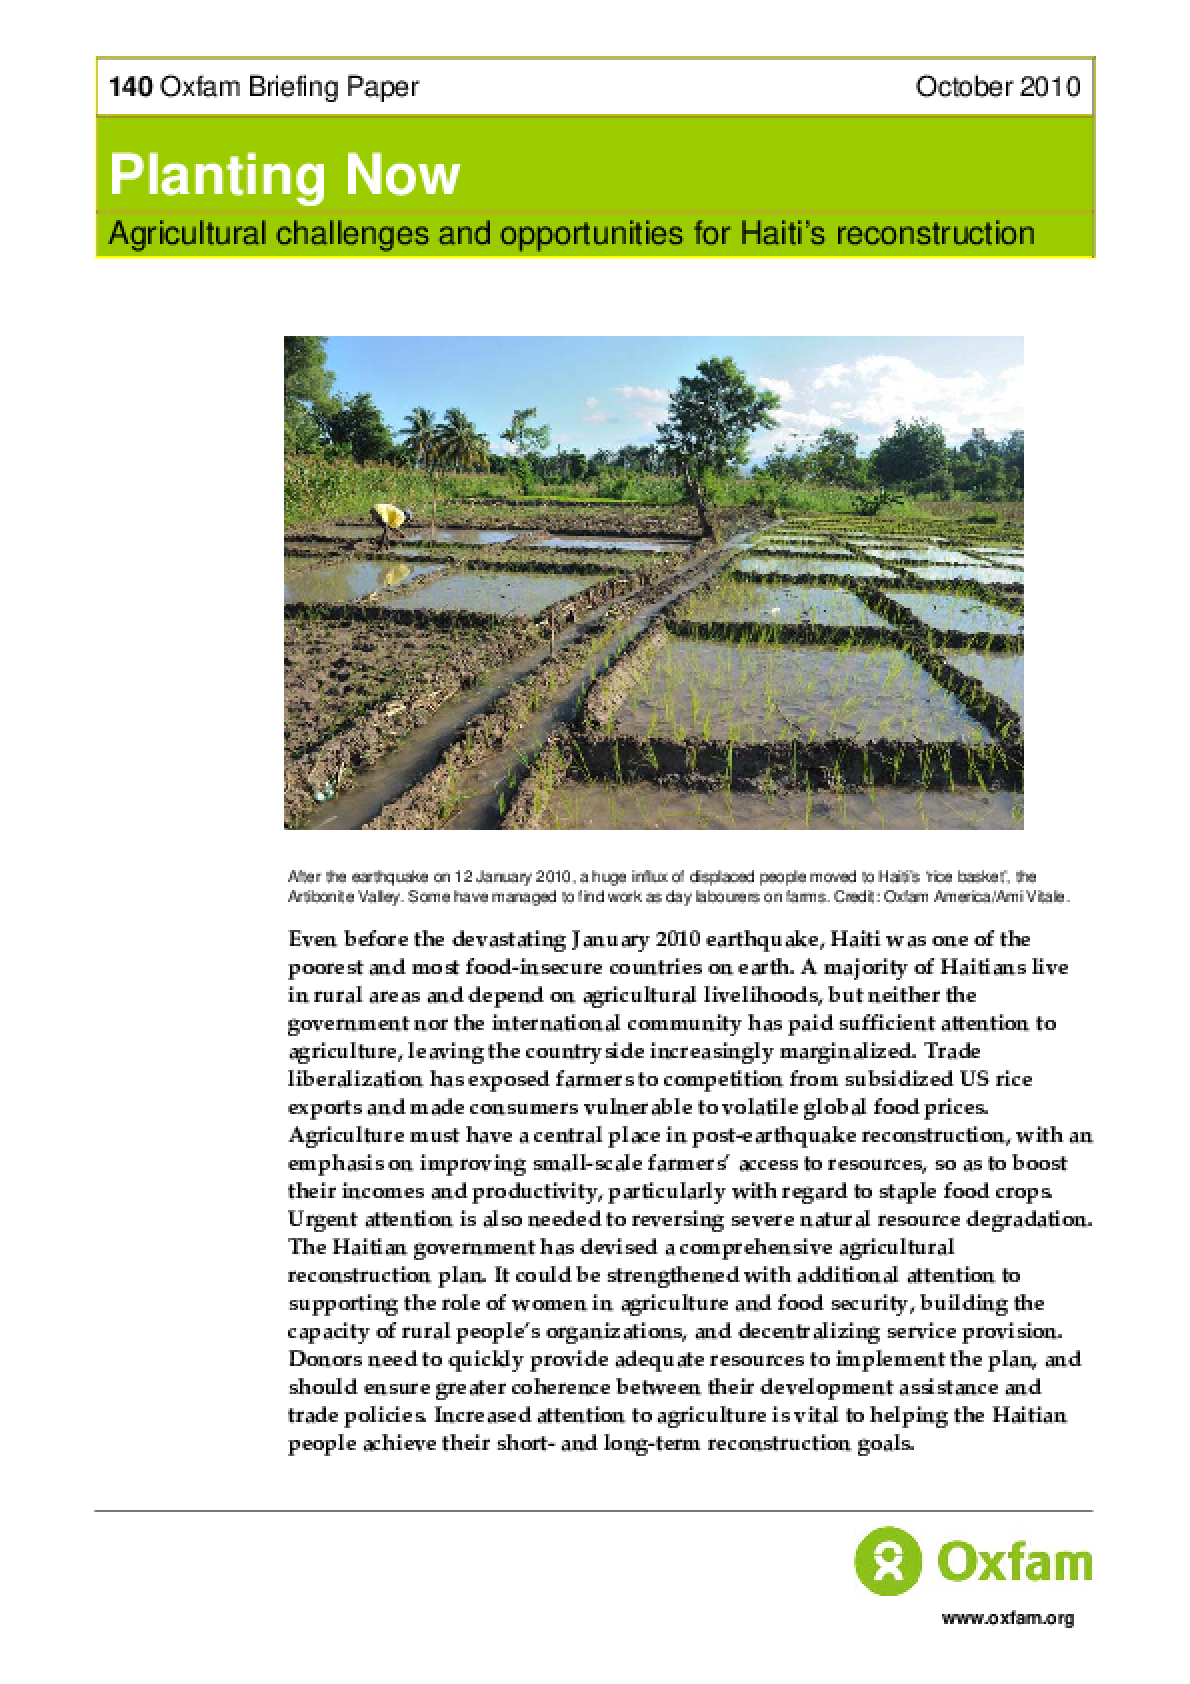 Planting Now: Agricultural challenges and opportunities for Haiti's reconstruction